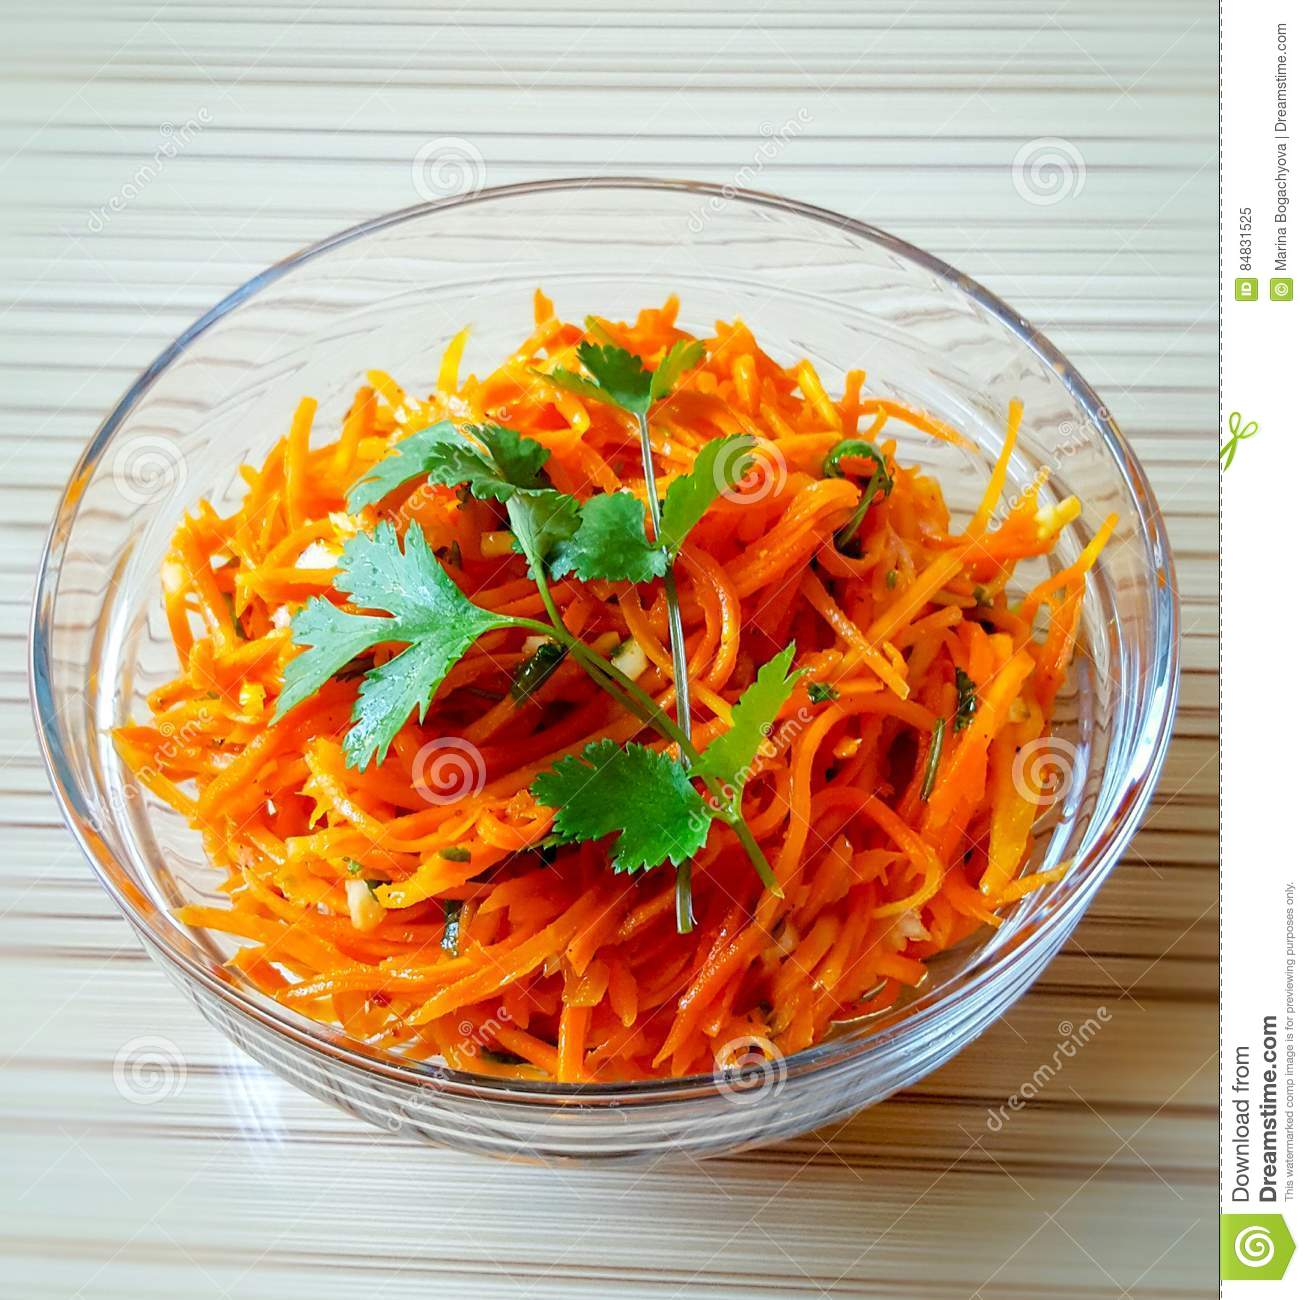 Carrot salad with garlic